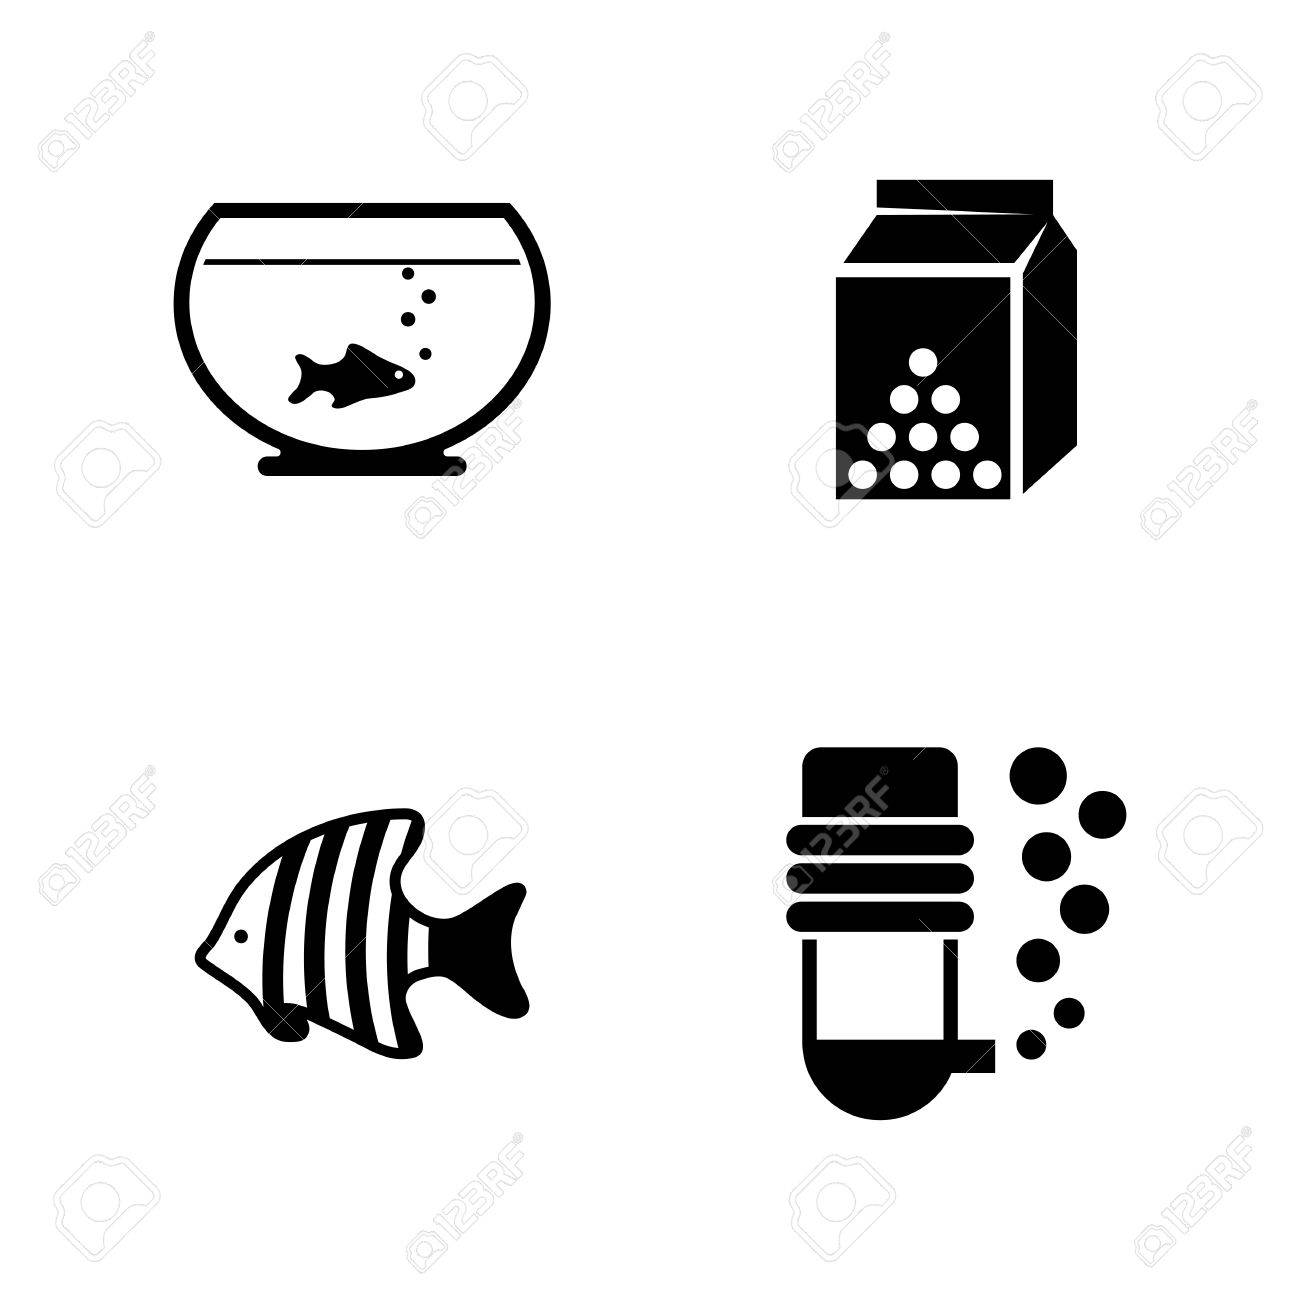 Aquarium Fish Simple Related Vector Icons Set For Video Mobile